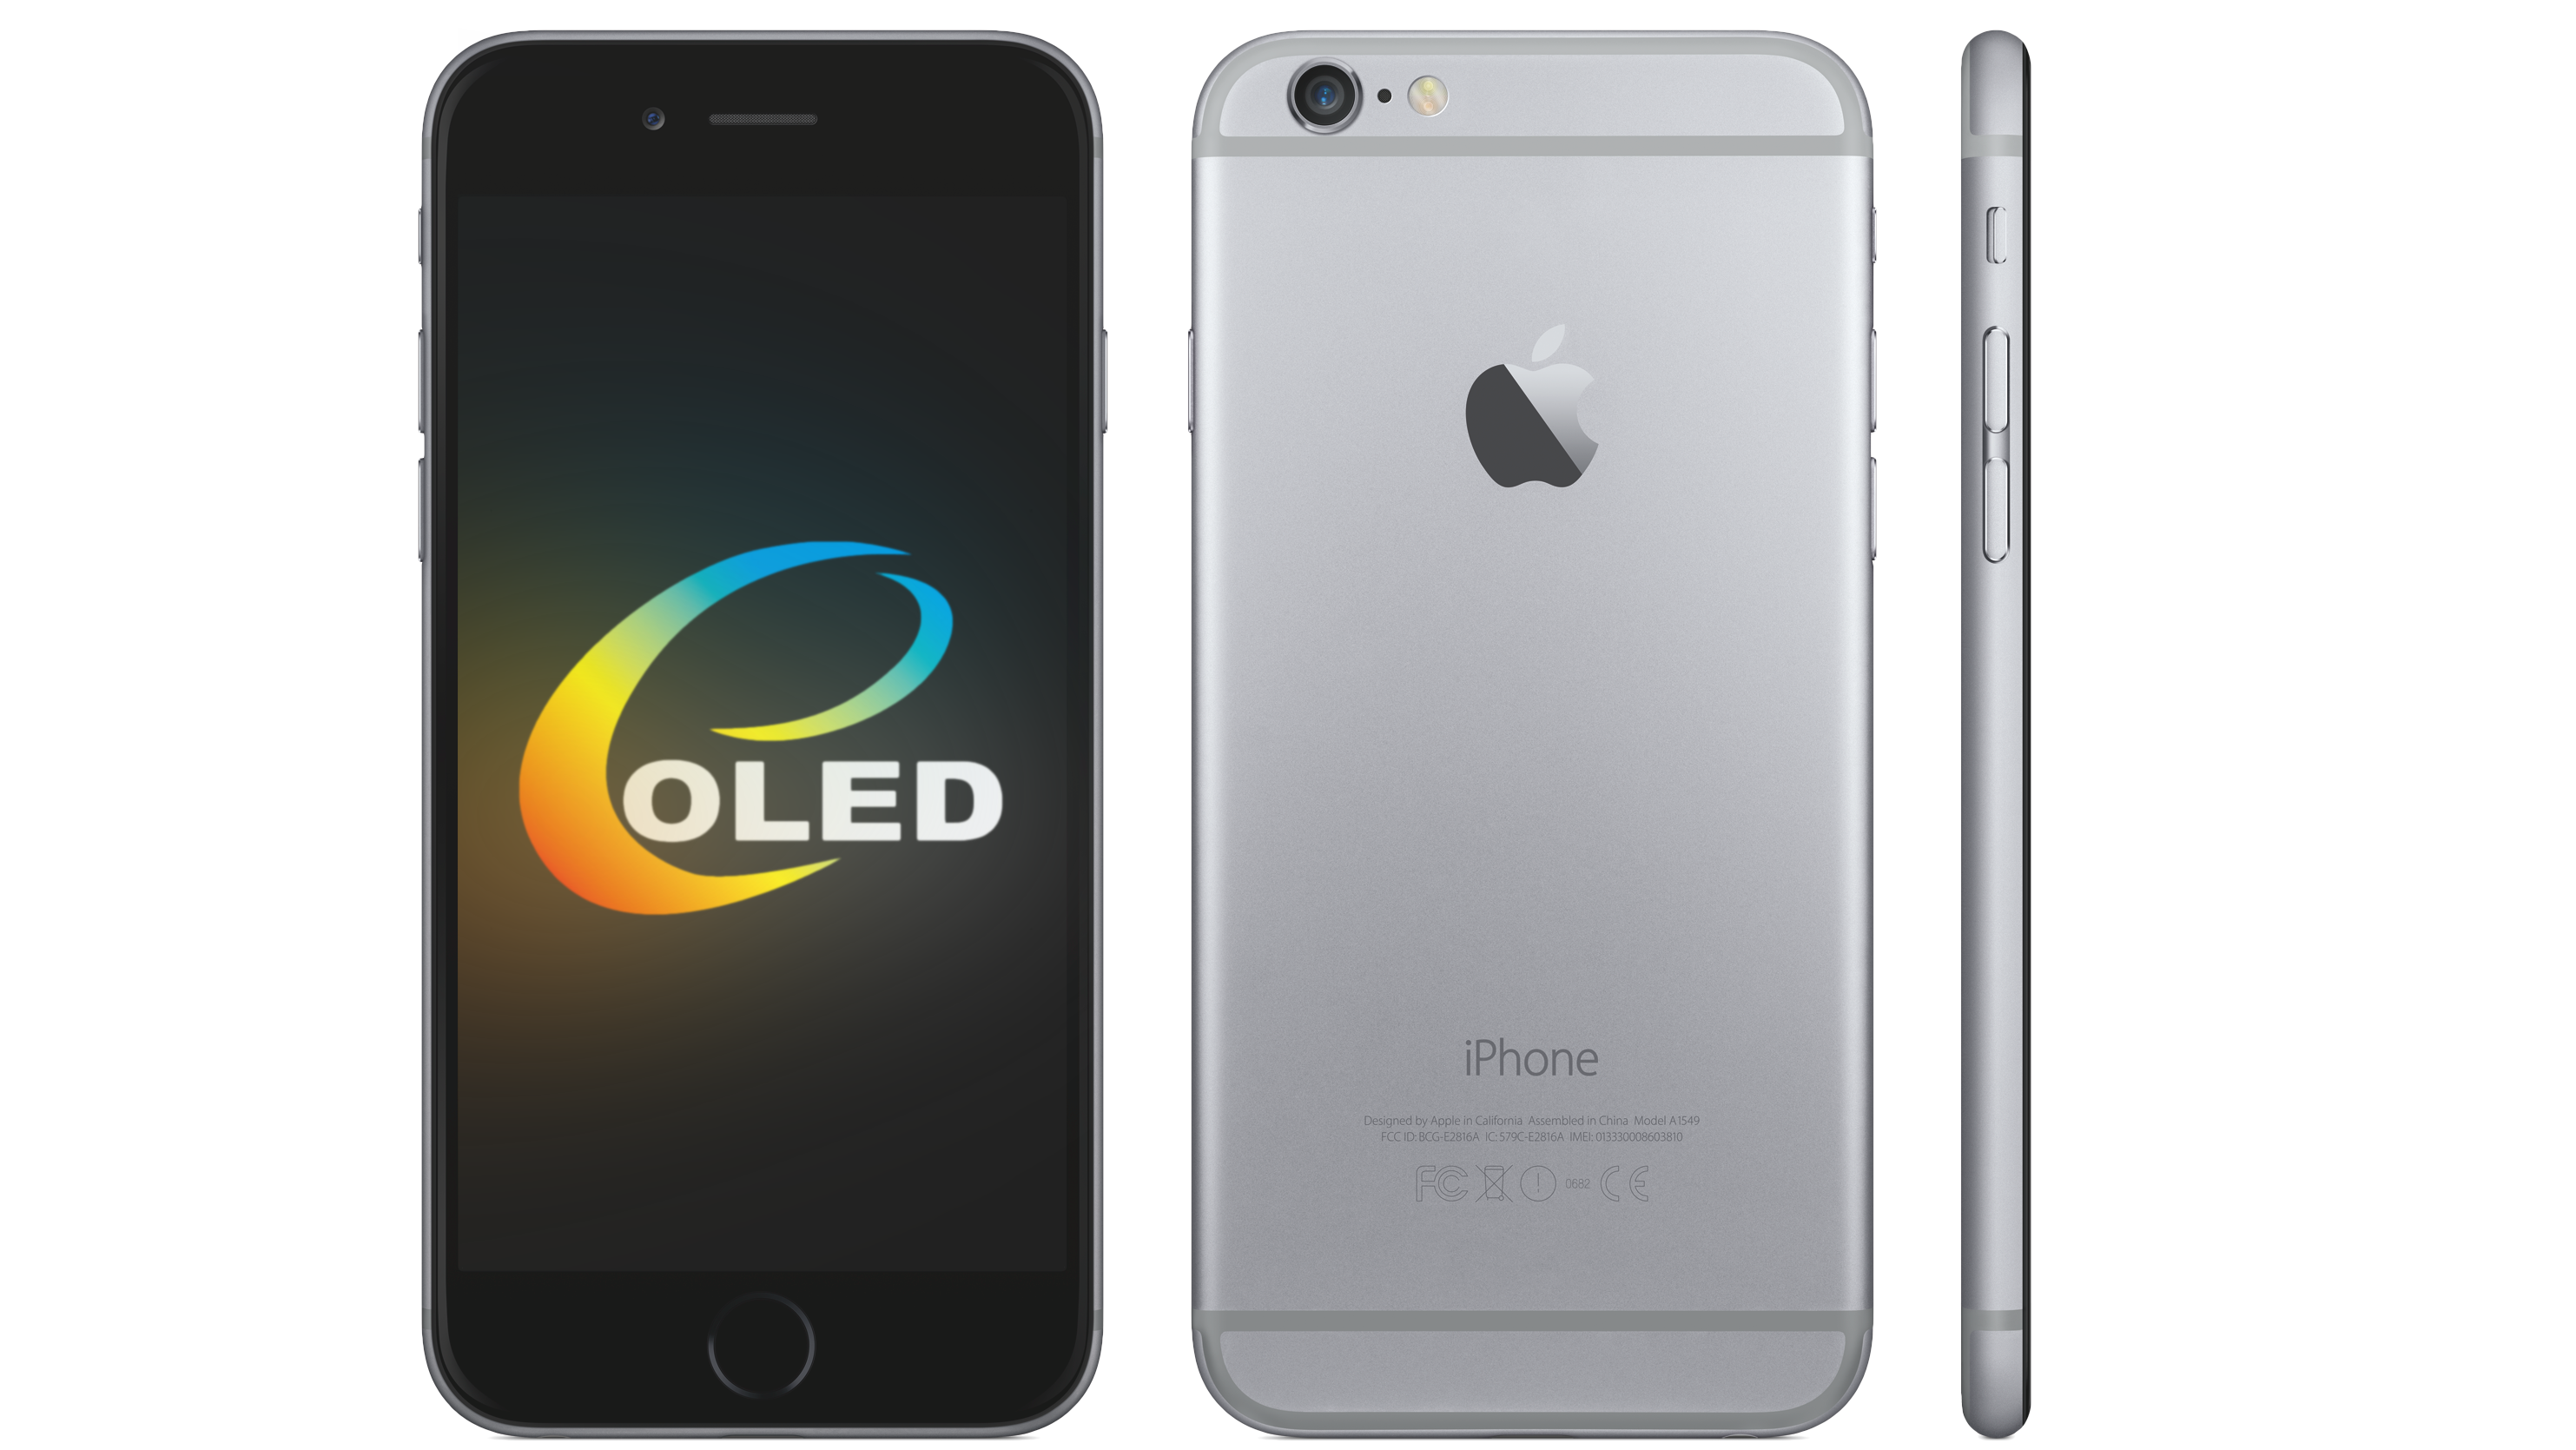 iPhone oled 16x9